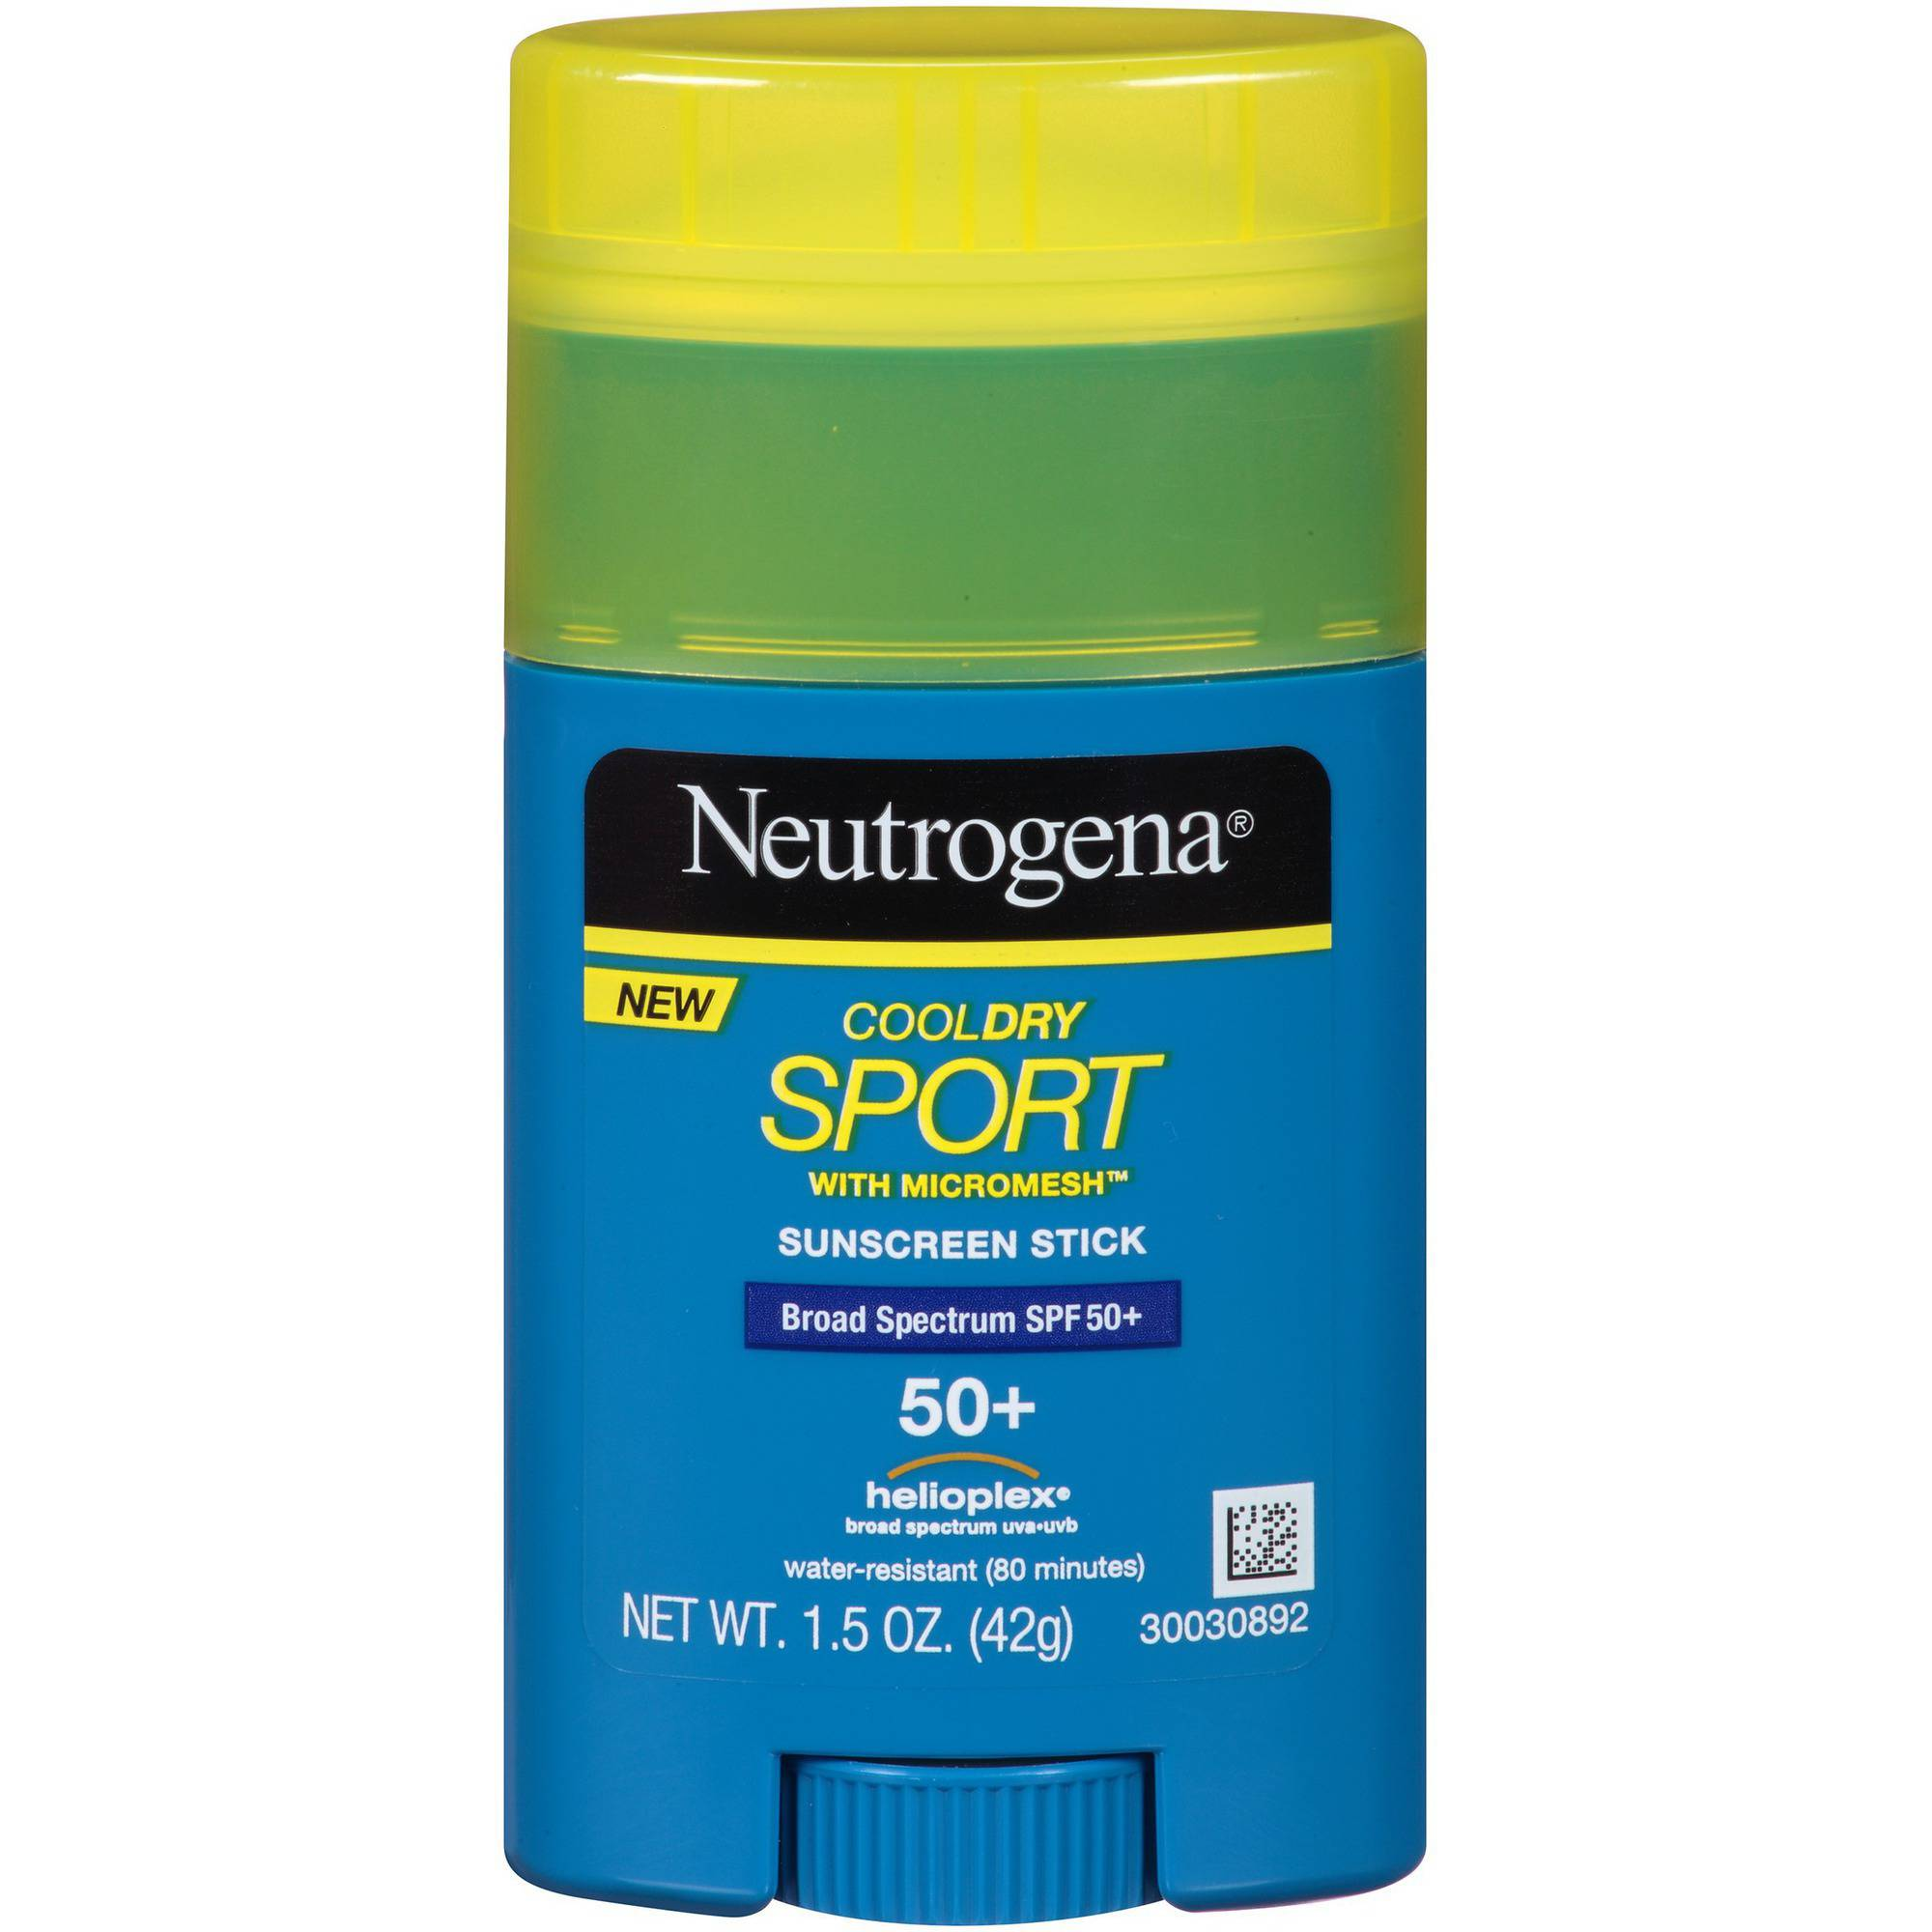 Neutrogena CoolDry Sport Sunscreen Stick, SPF 50, 1.5 oz